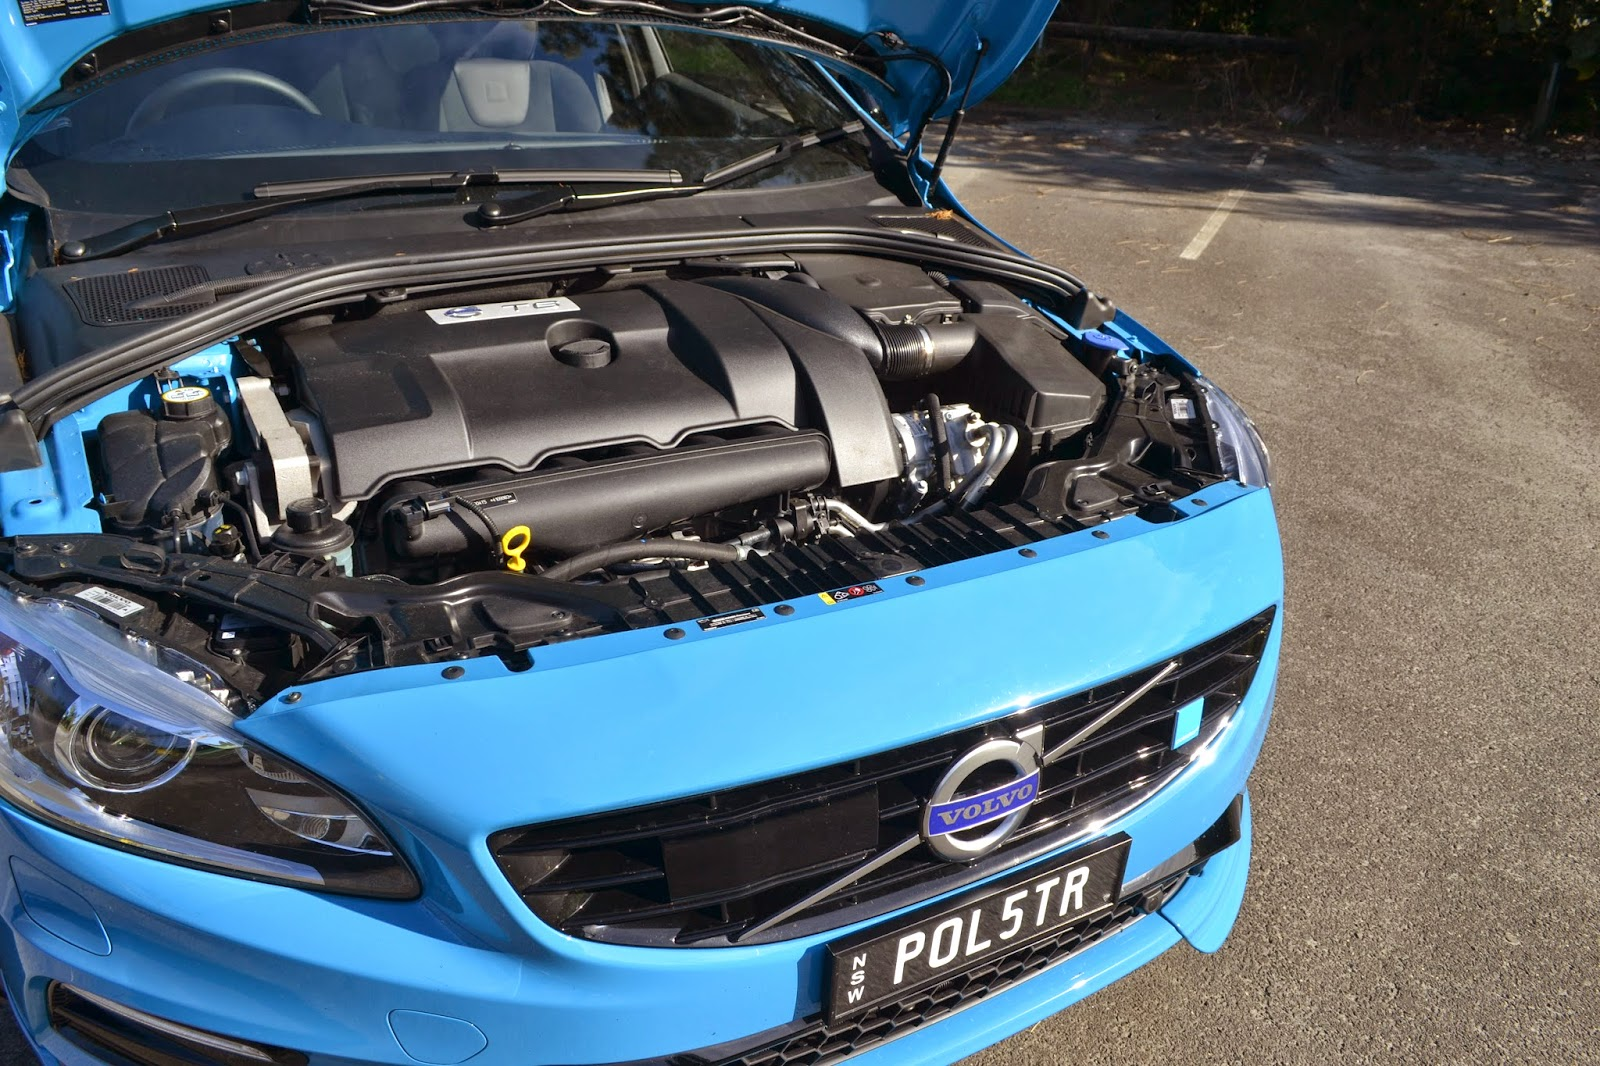 Volvo V60 Polestars powerful turbo charged inline 6 or T6 for short